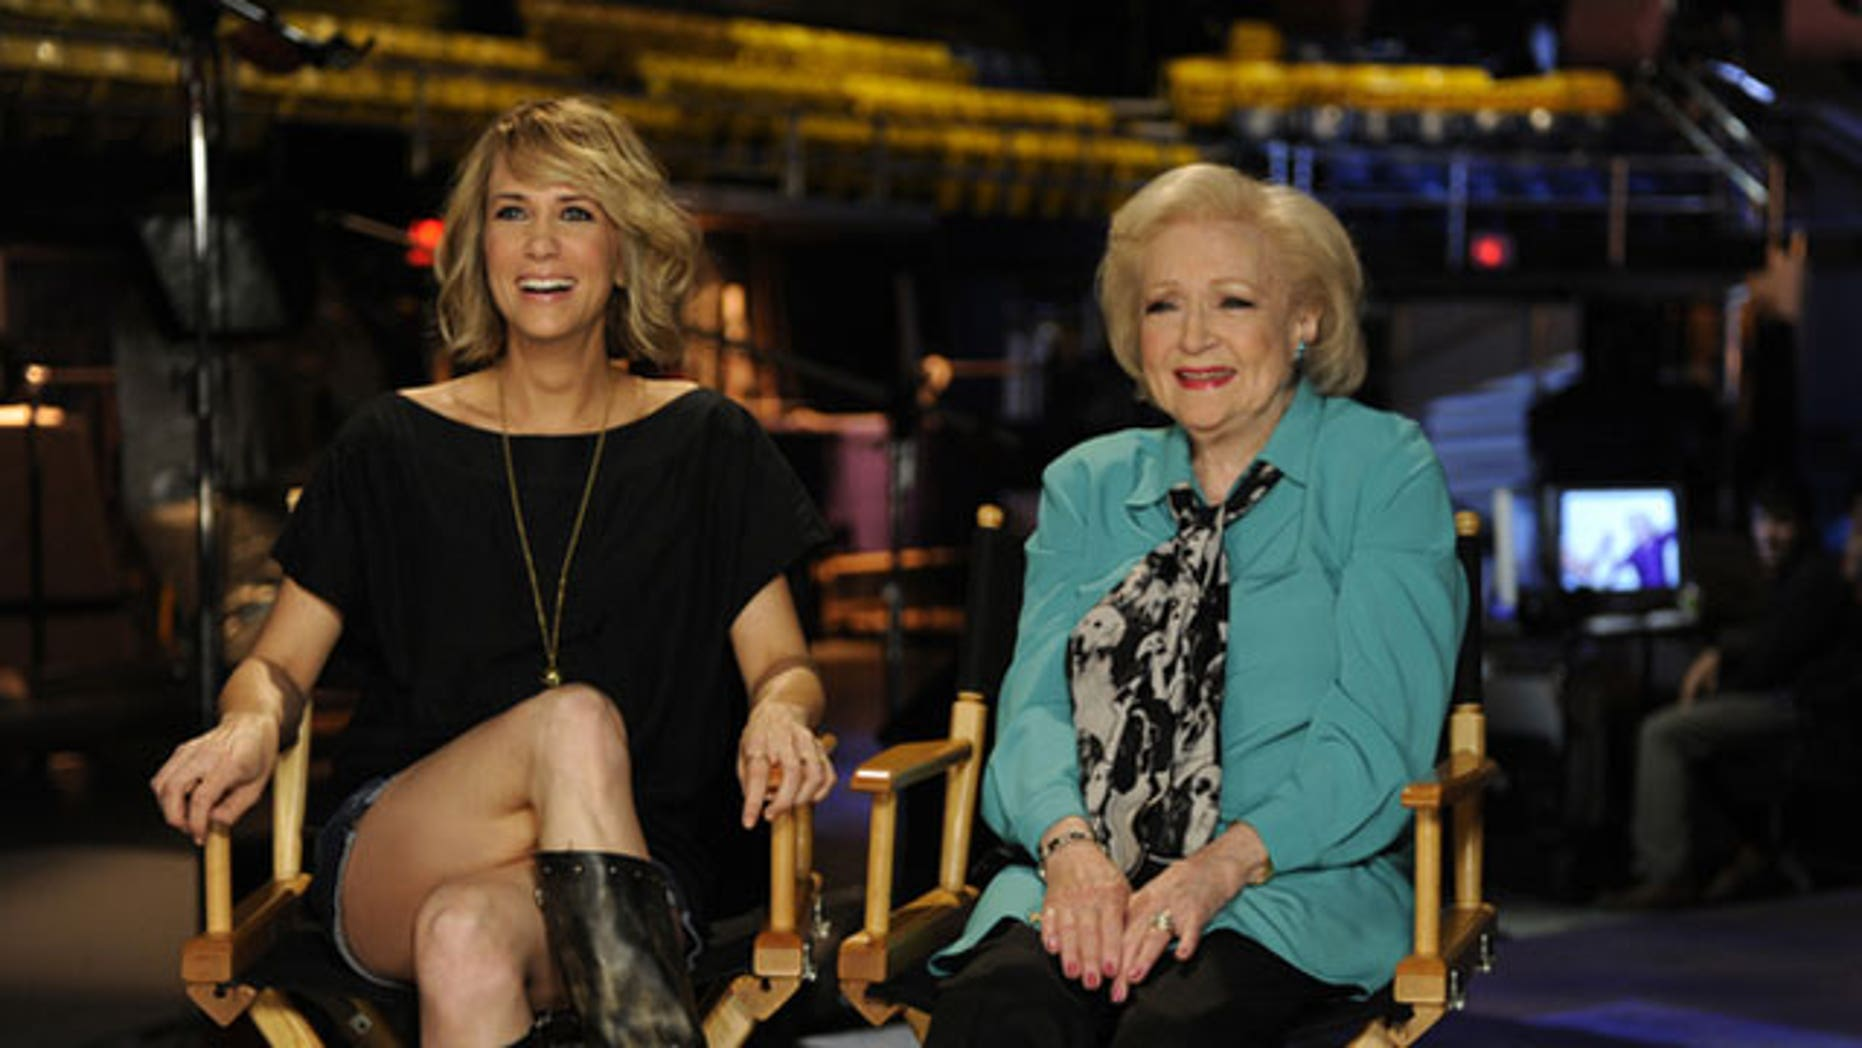 """May 4: In this publicity image released by NBC, cast member Kristen Wiig,left, and Betty White are shown on the set of """"Saturday Night Live."""""""